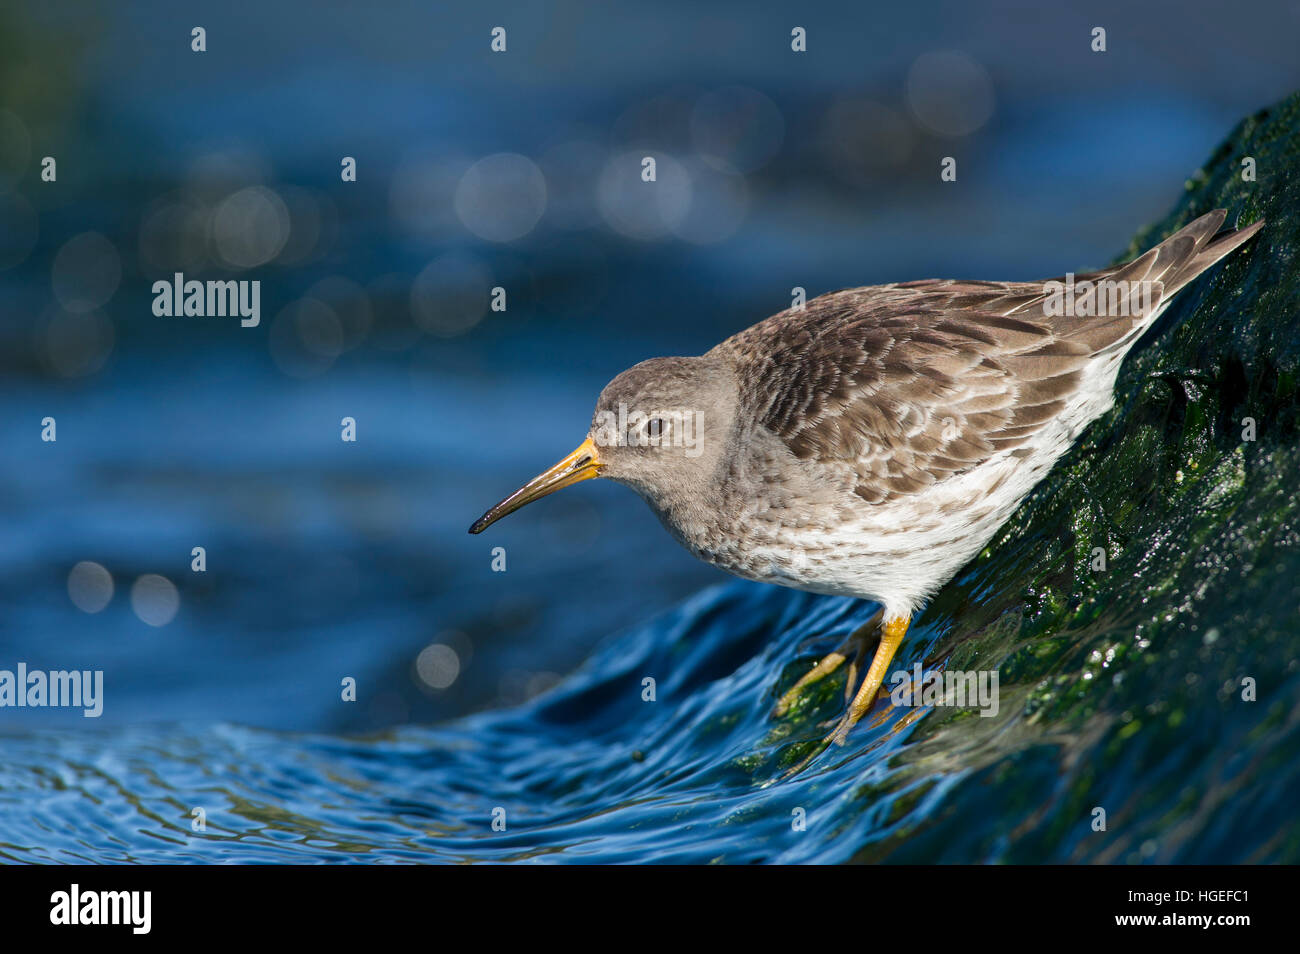 A Purple Sandpiper clings to the slick rocks as small waves splash up on its feet on a bright sunny day. - Stock Image